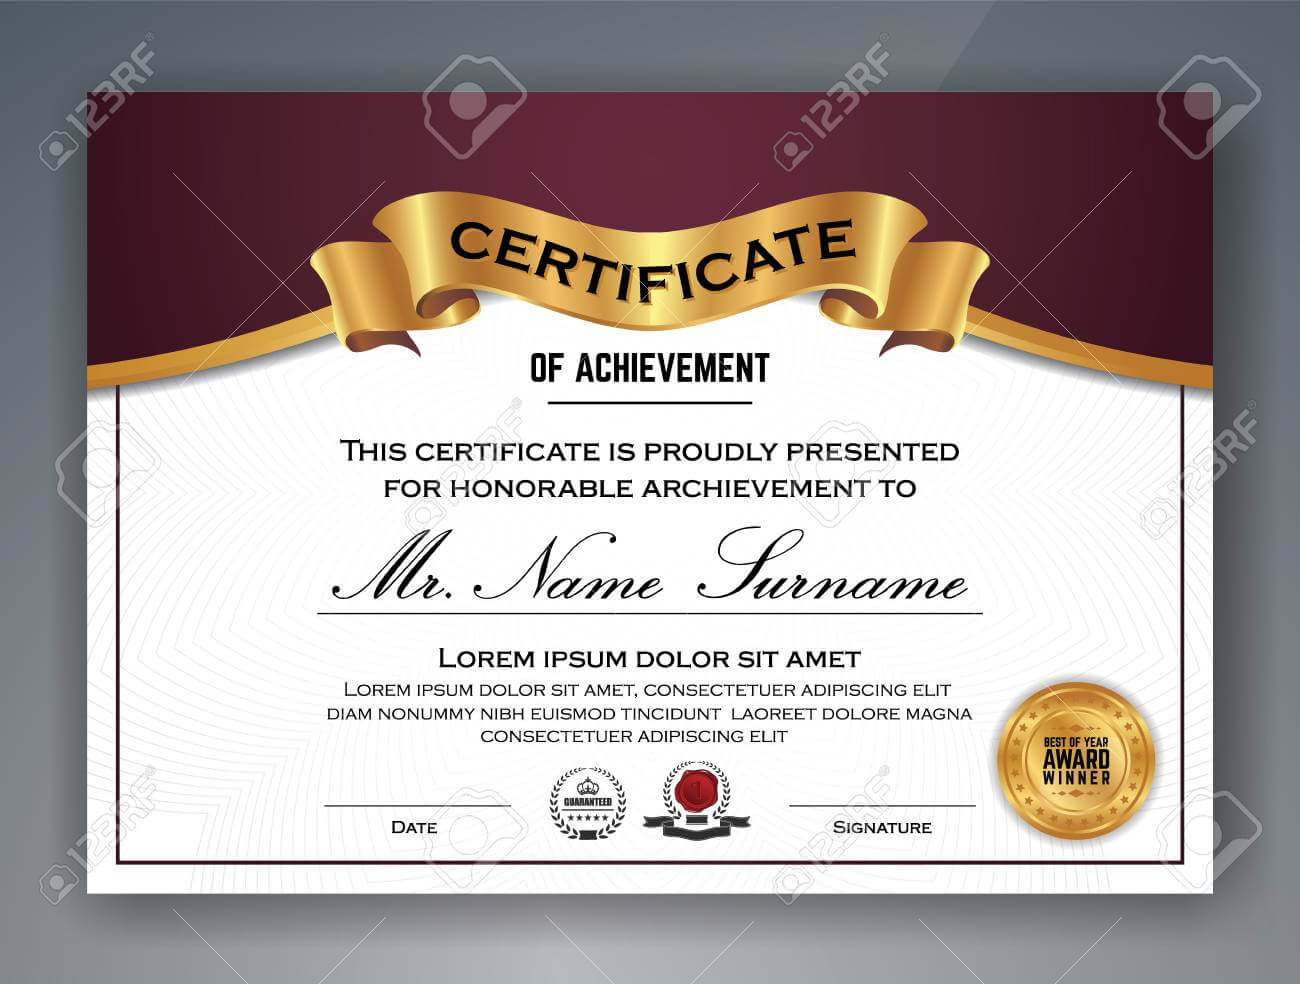 Multipurpose Professional Certificate Template Design For Print Regarding Professional Award Certificate Template